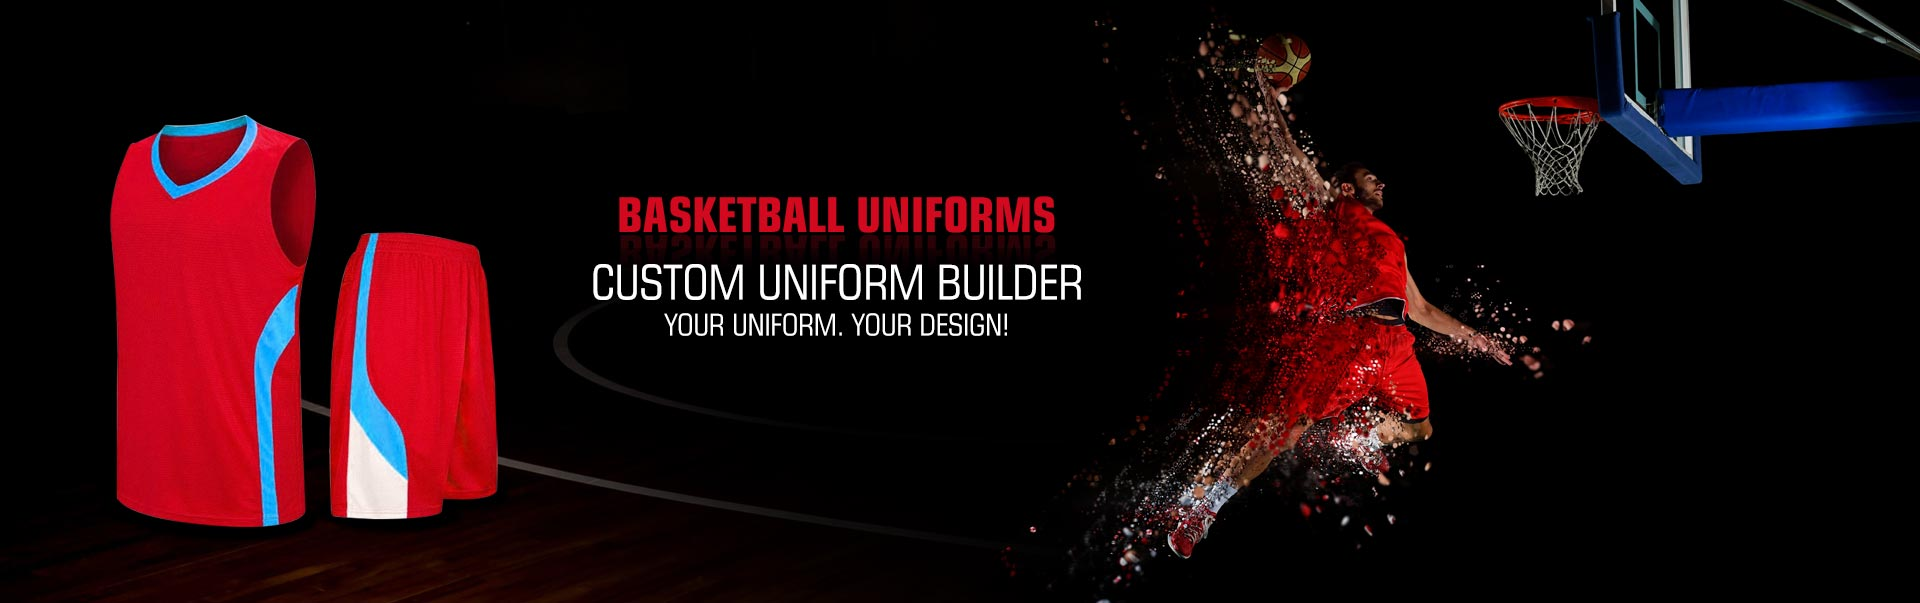 Basketball Uniforms Wholesaler, Suppliers in Regensburg